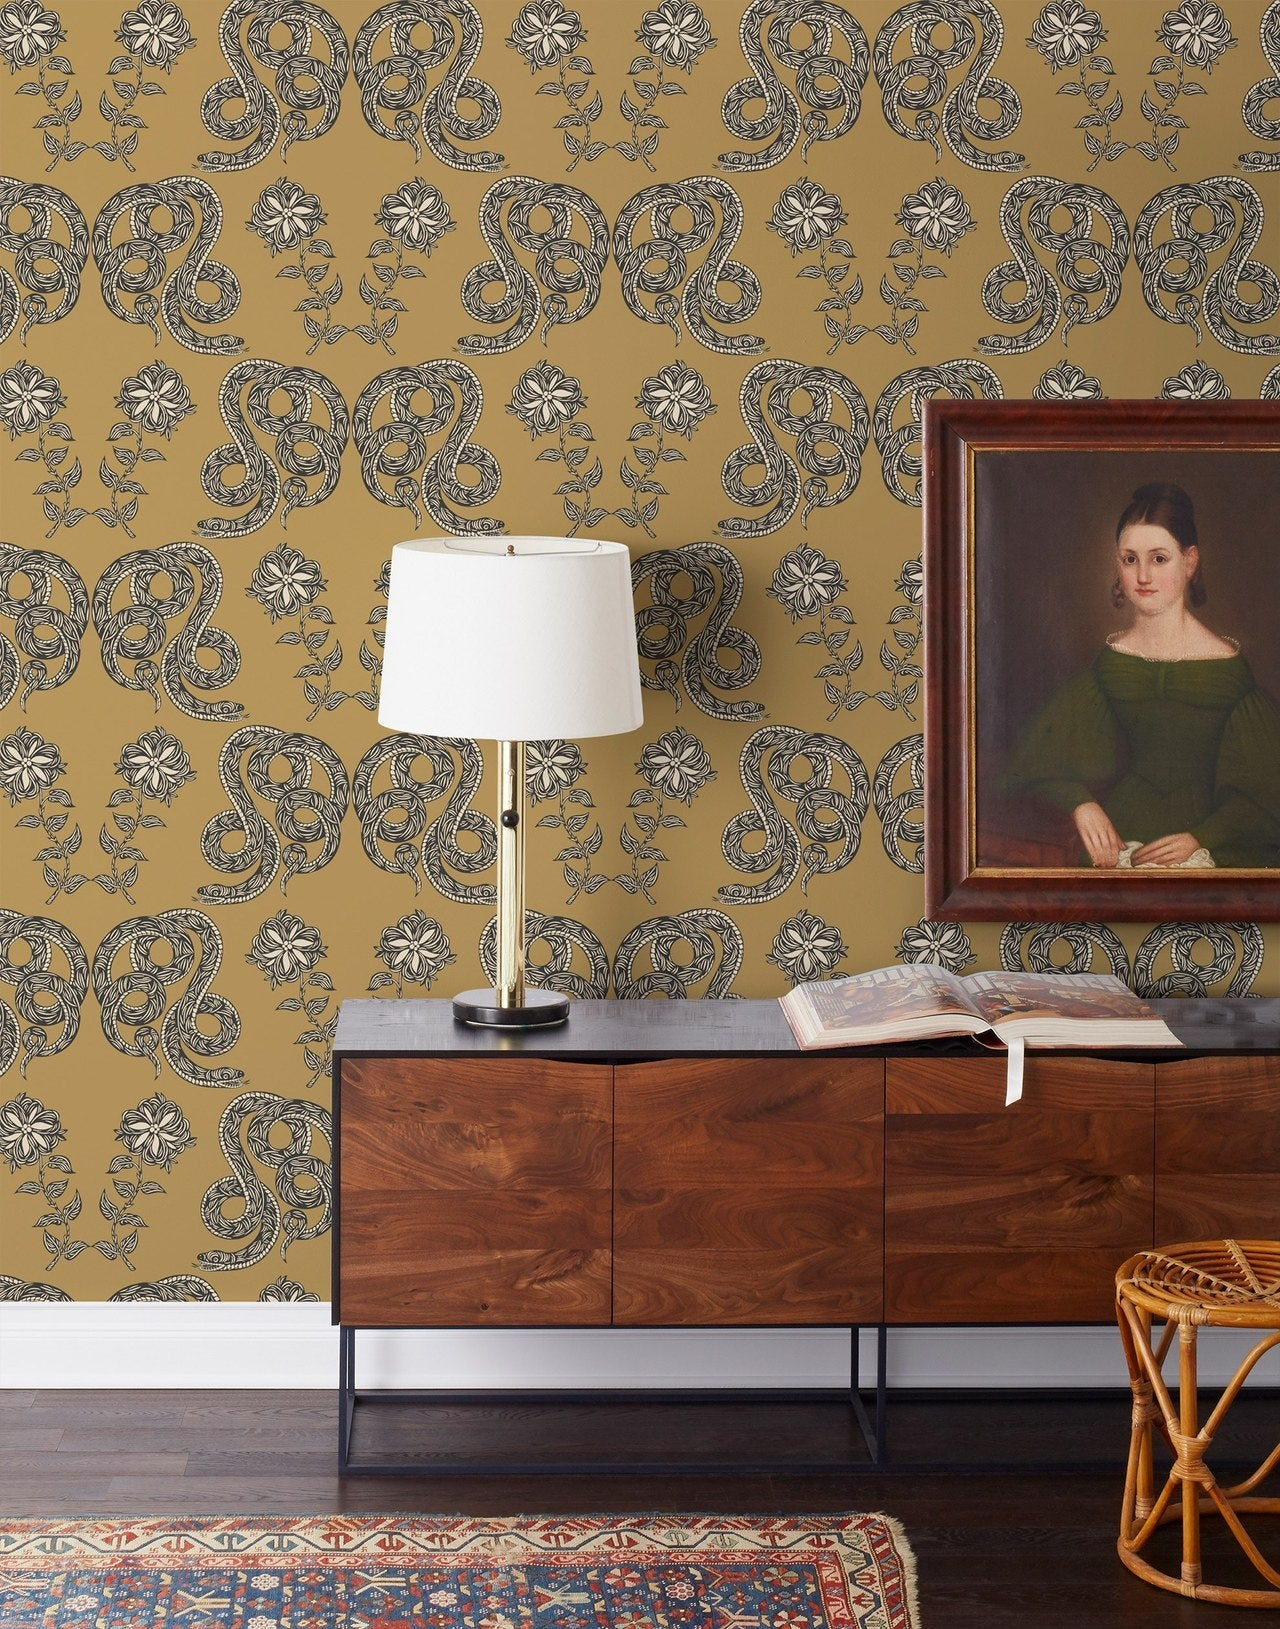 Product + Pattern: Scott McGlasson | Woodsport | Serpentine Butterscotch wallpaper | PATCH NYC | Hygge & West